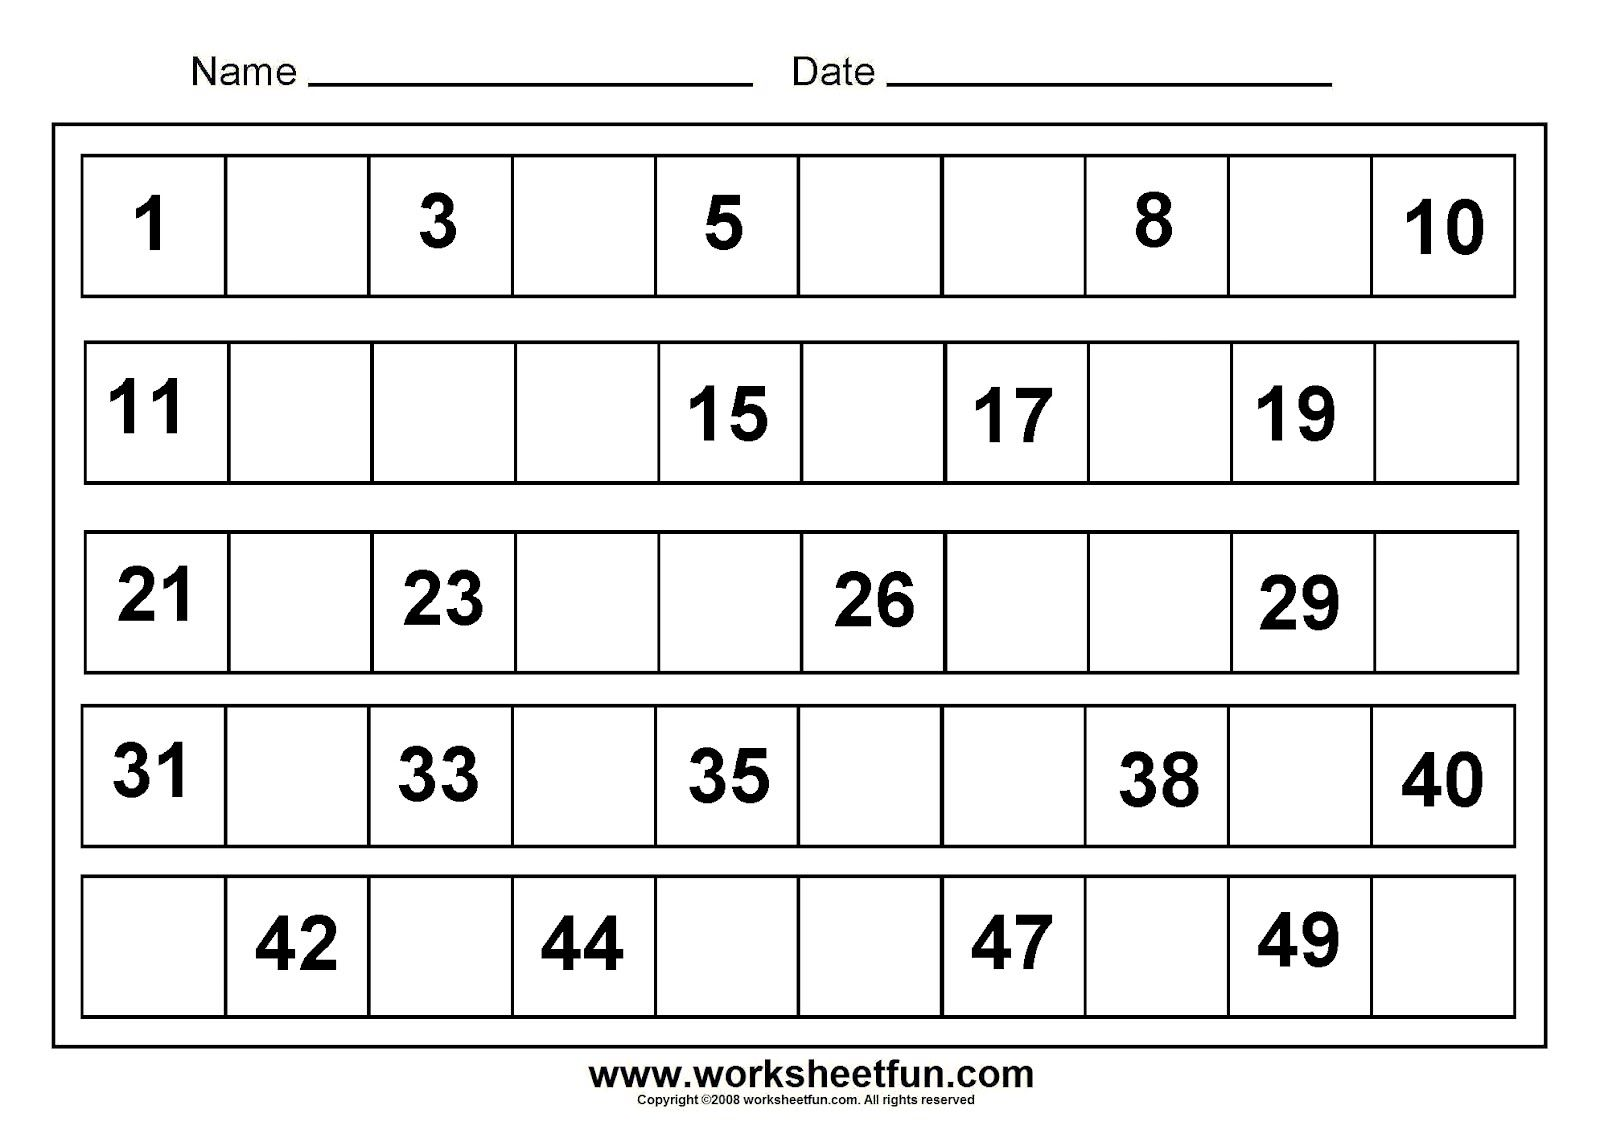 Printables For Kindergarten  Free Printable Math Worksheets For  Printables For Kindergarten  Free Printable Math Worksheets For Preschool  Kindergarten First